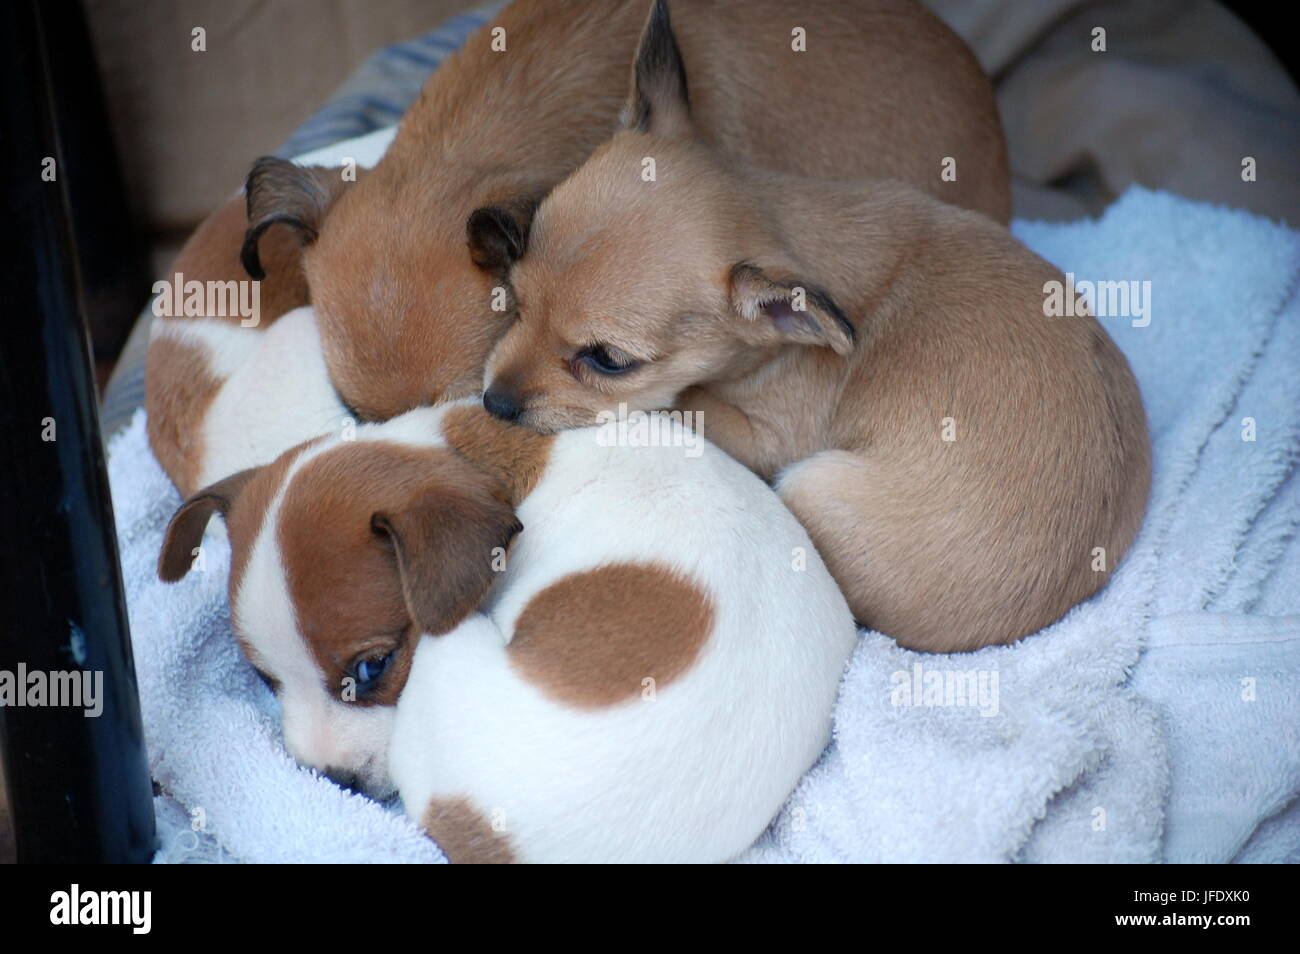 A litter of puppies - Stock Image